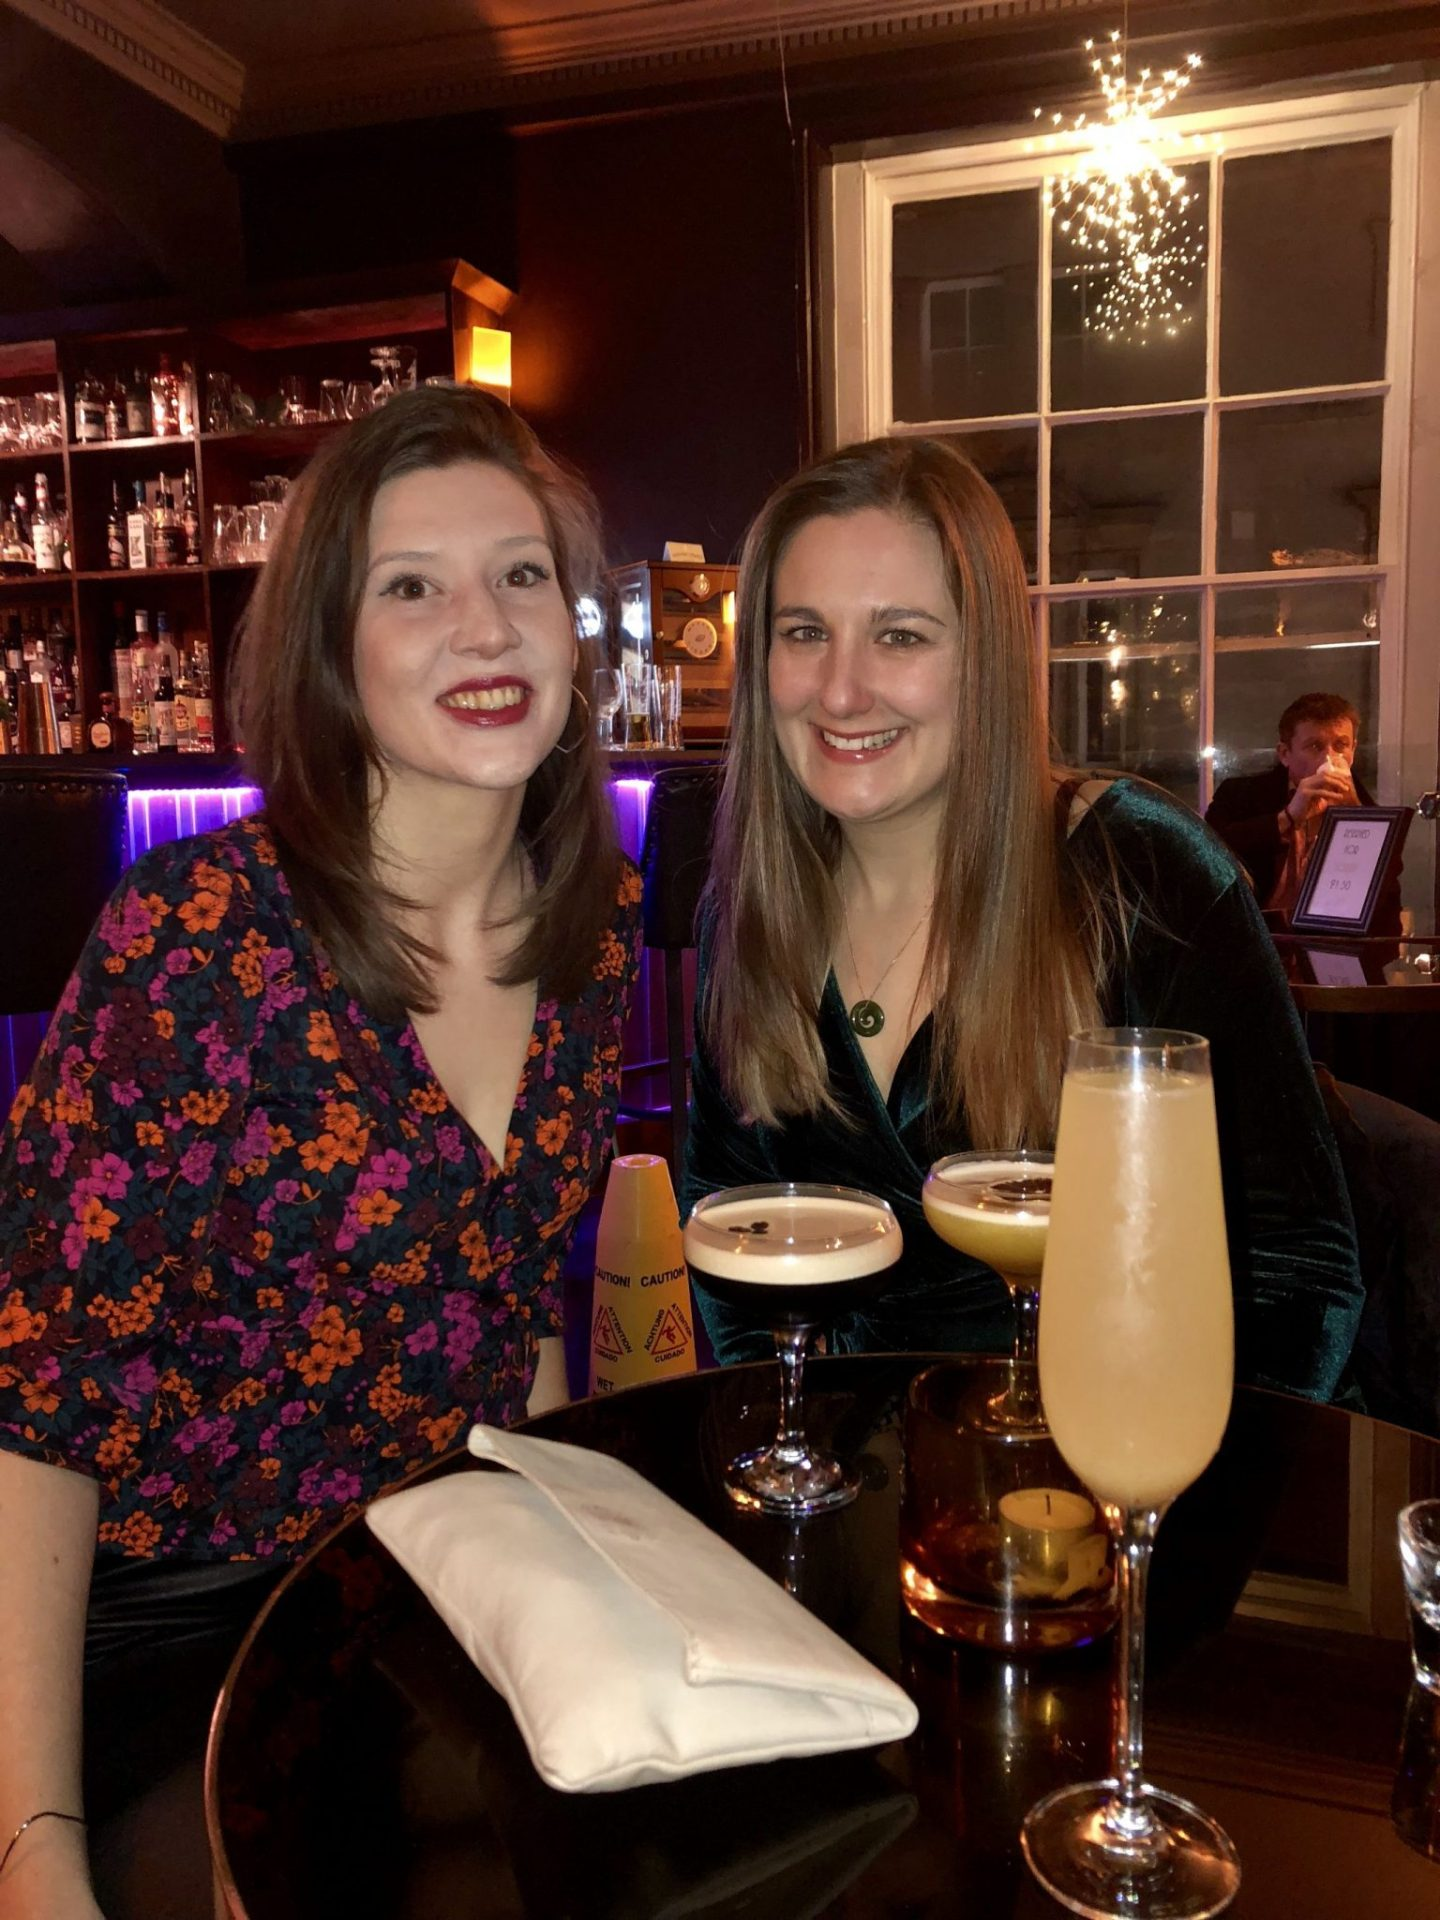 Cocktails with friends in Cheltenham, Gloucestershire